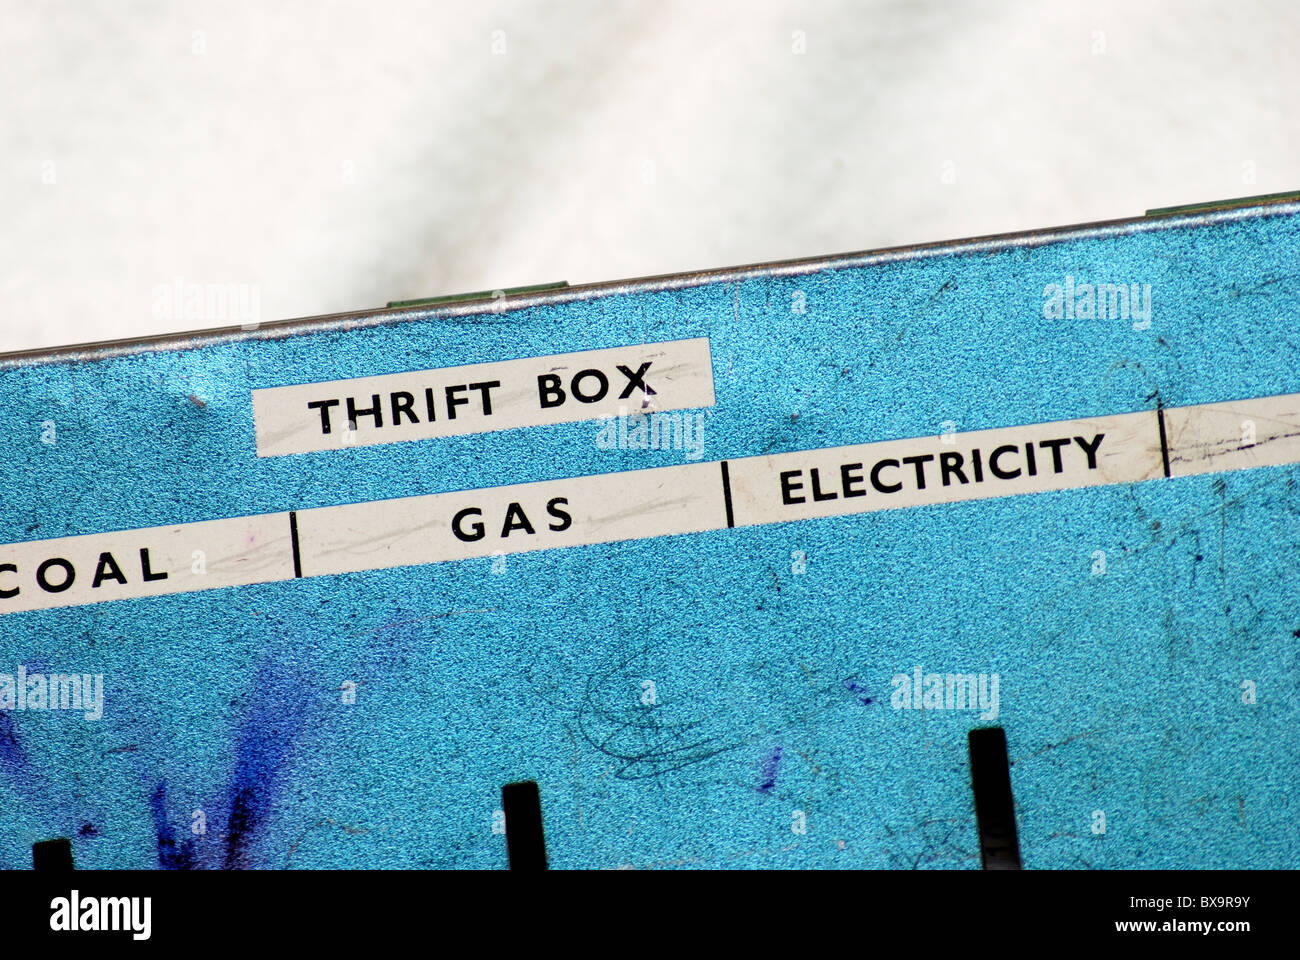 old thrifty savings tin for bills england uk - Stock Image